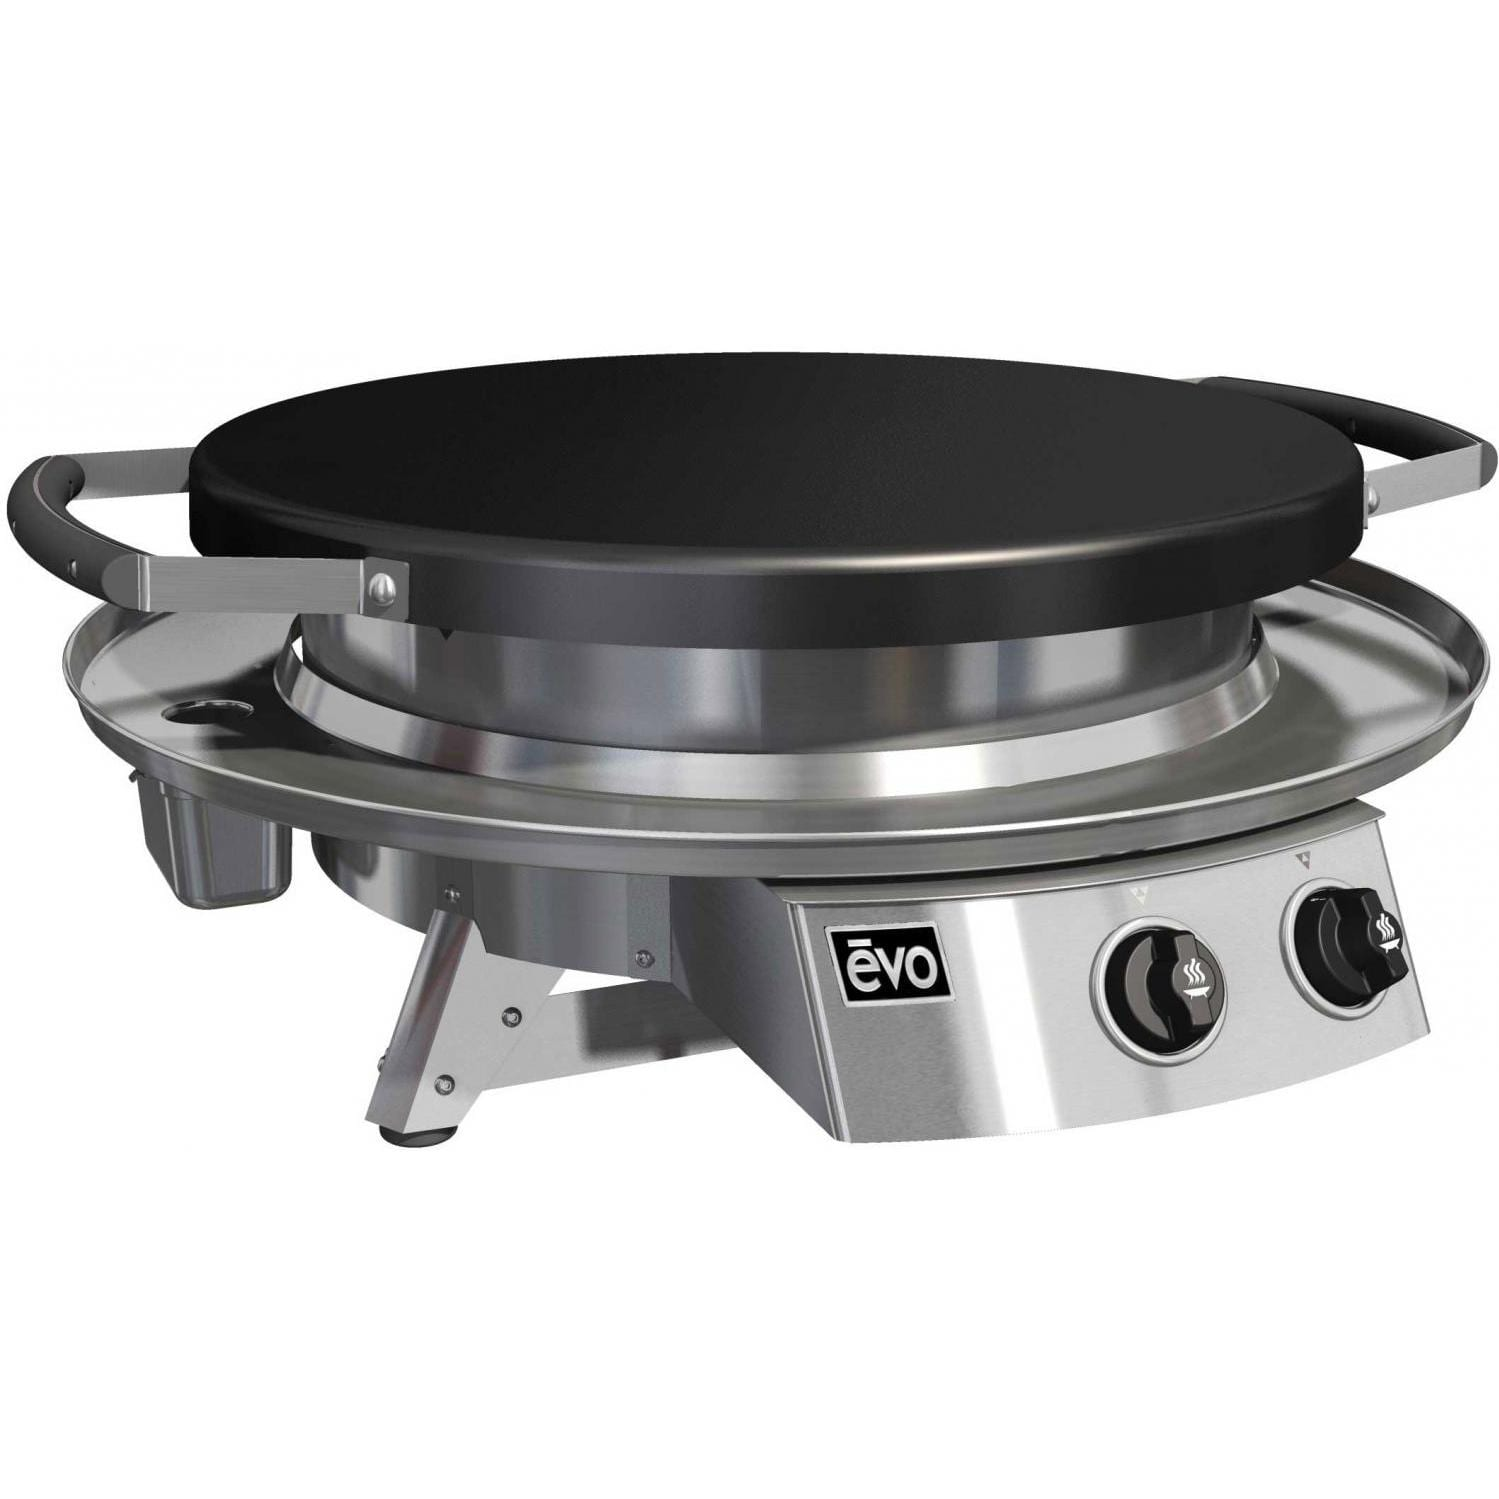 Evo Professional Classic Tabletop Flattop Propane Gas Grill With Ceramic Cooking Surface